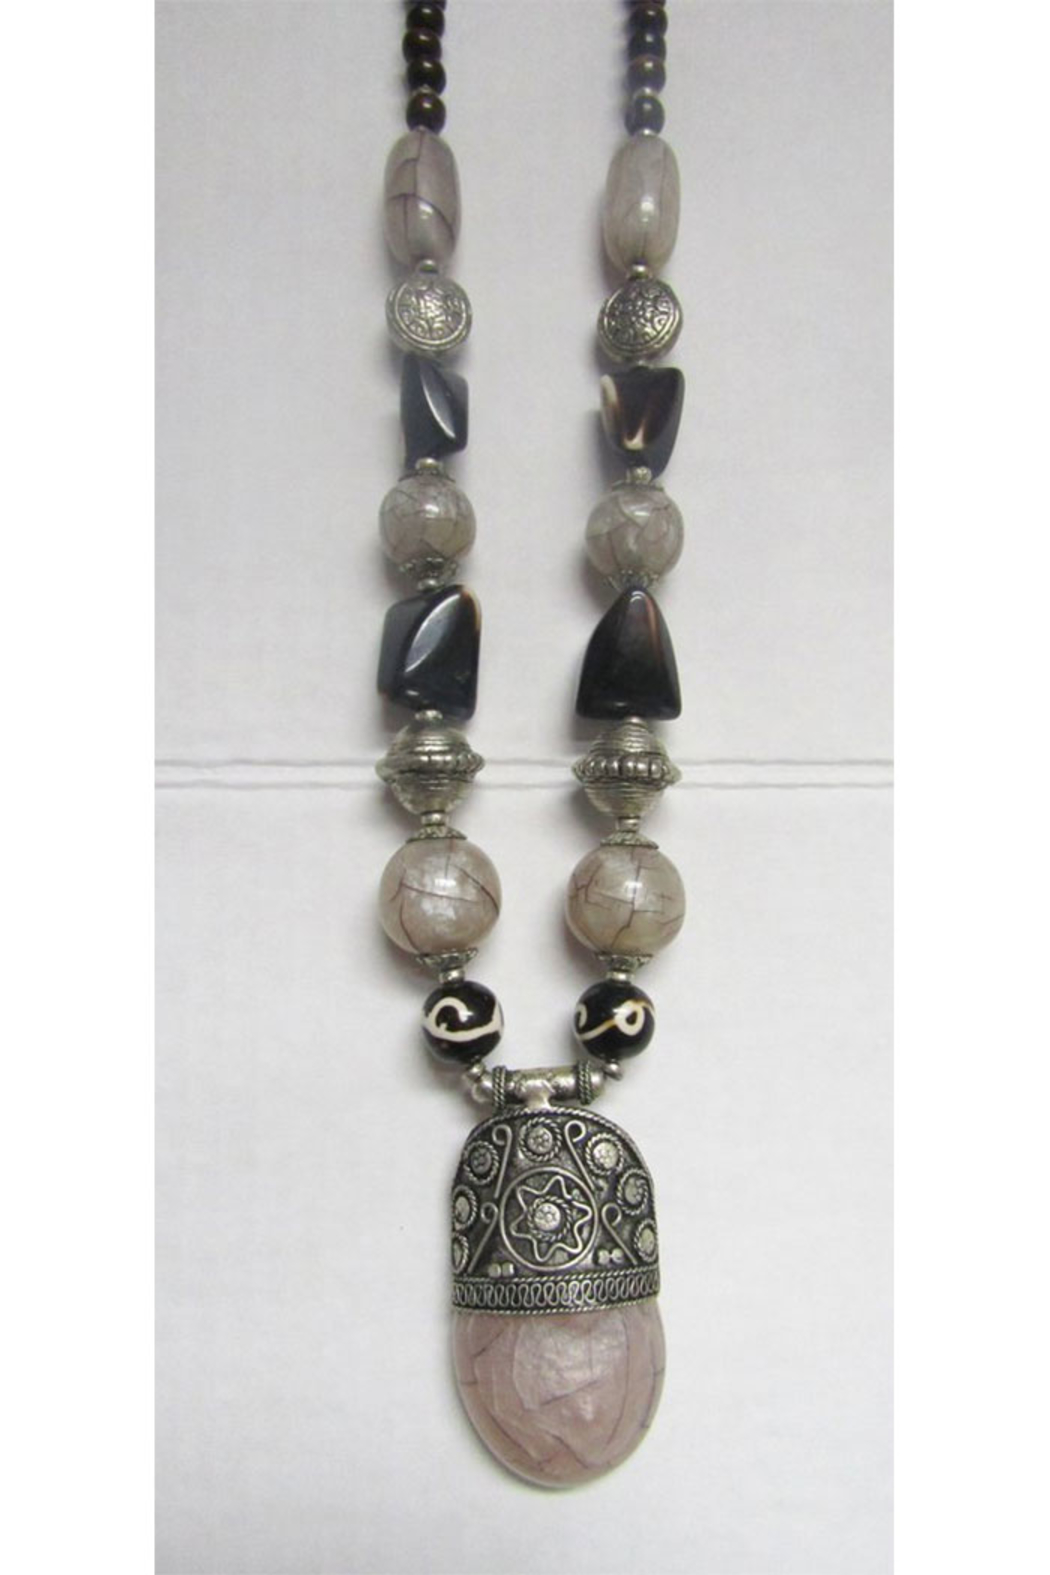 KIMBALS Tibetan Bohemian Style Beaded Necklace In Silver/Brown/Gray-Tone Chunky Beads - Main Image